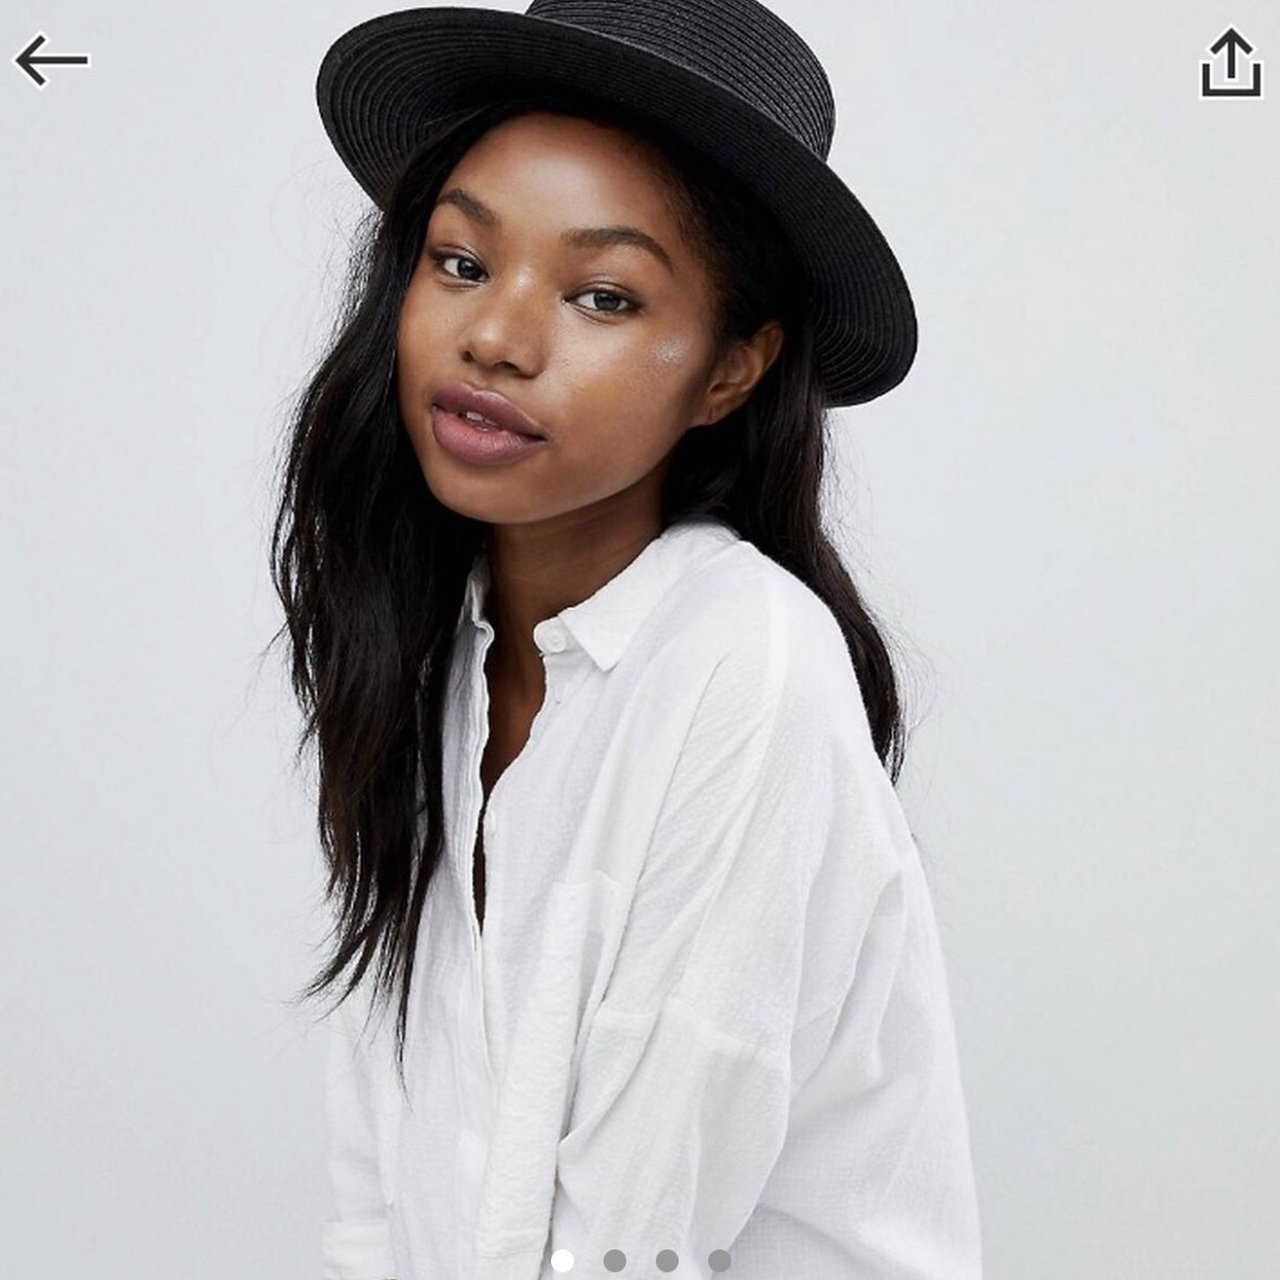 ASOS stylish black hat • free postage • worn once on holiday - Depop a650e6055c7